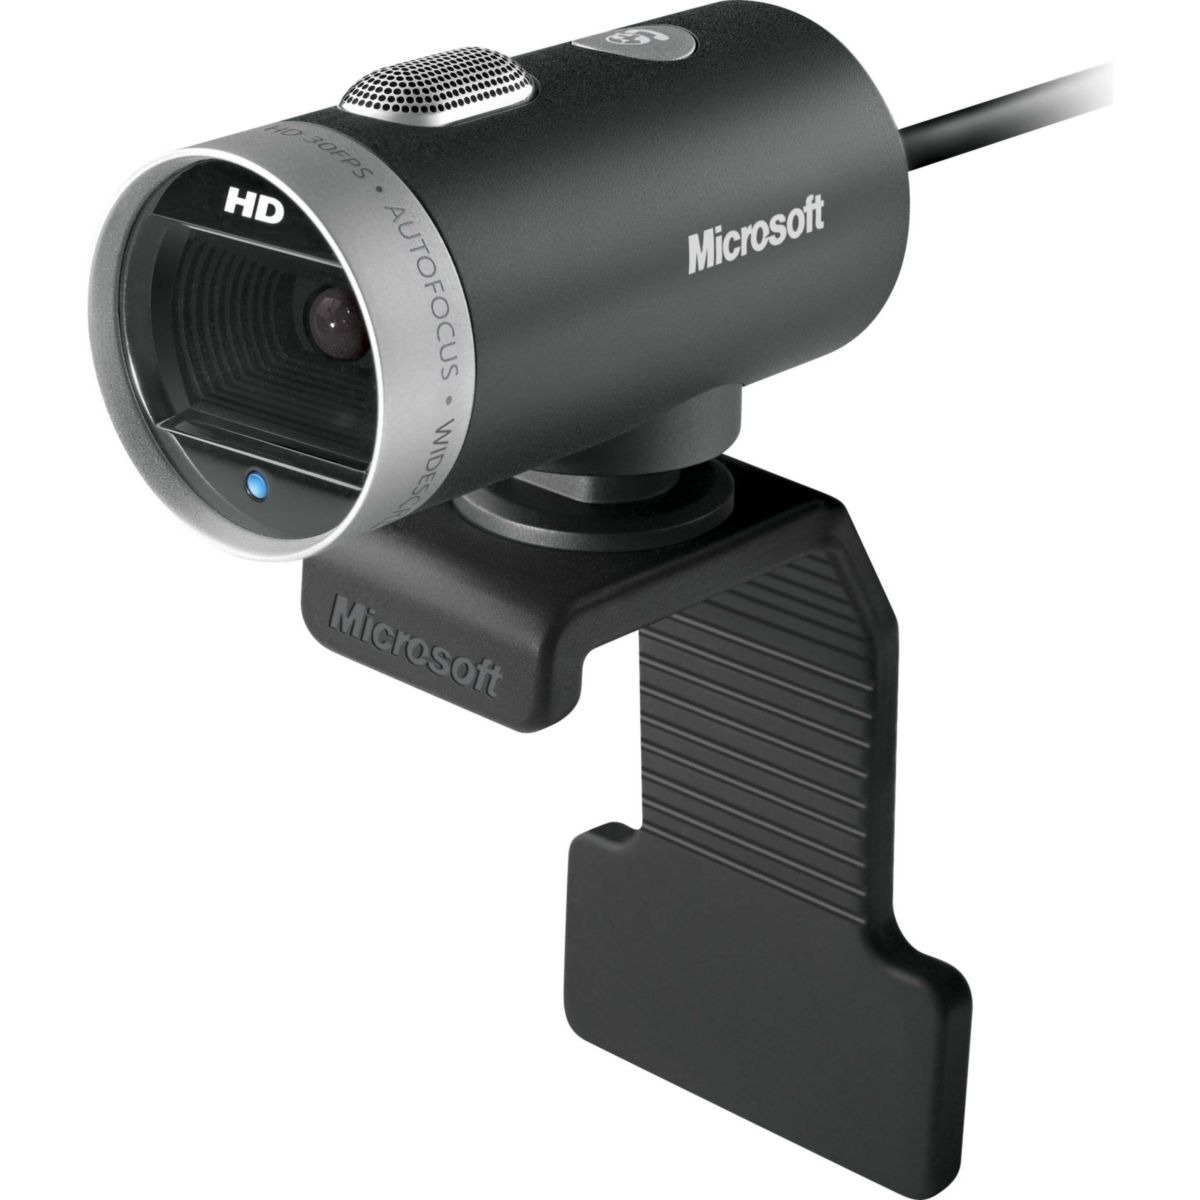 Microsoft Webcam LifeCam Cinema